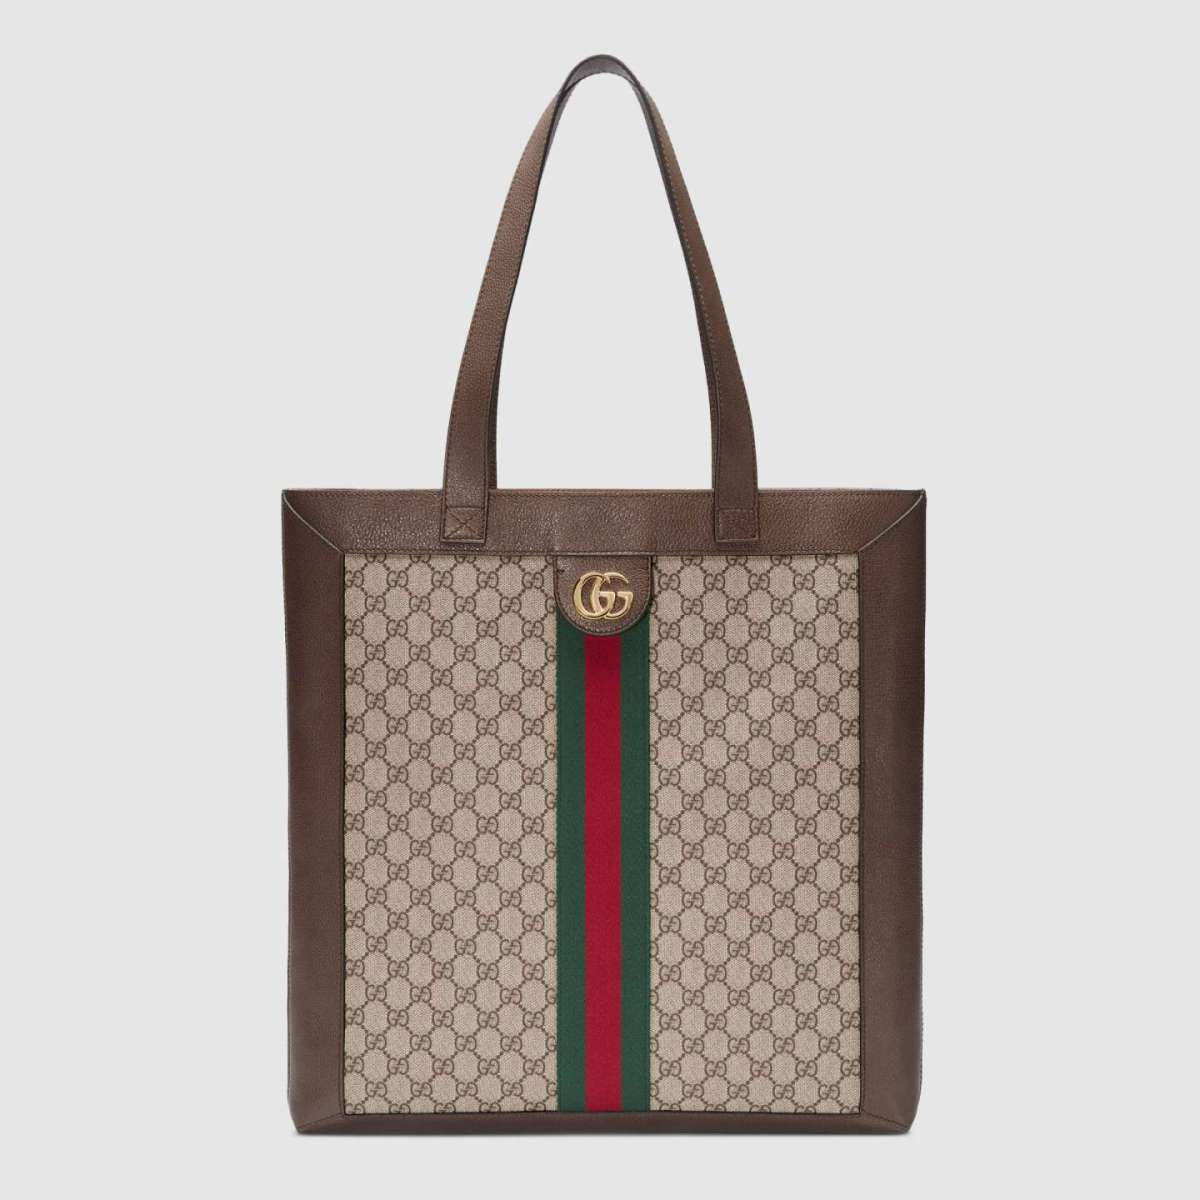 Borsa a spalla Gucci Ophidia in GG Supreme misura grande a 1150 euro